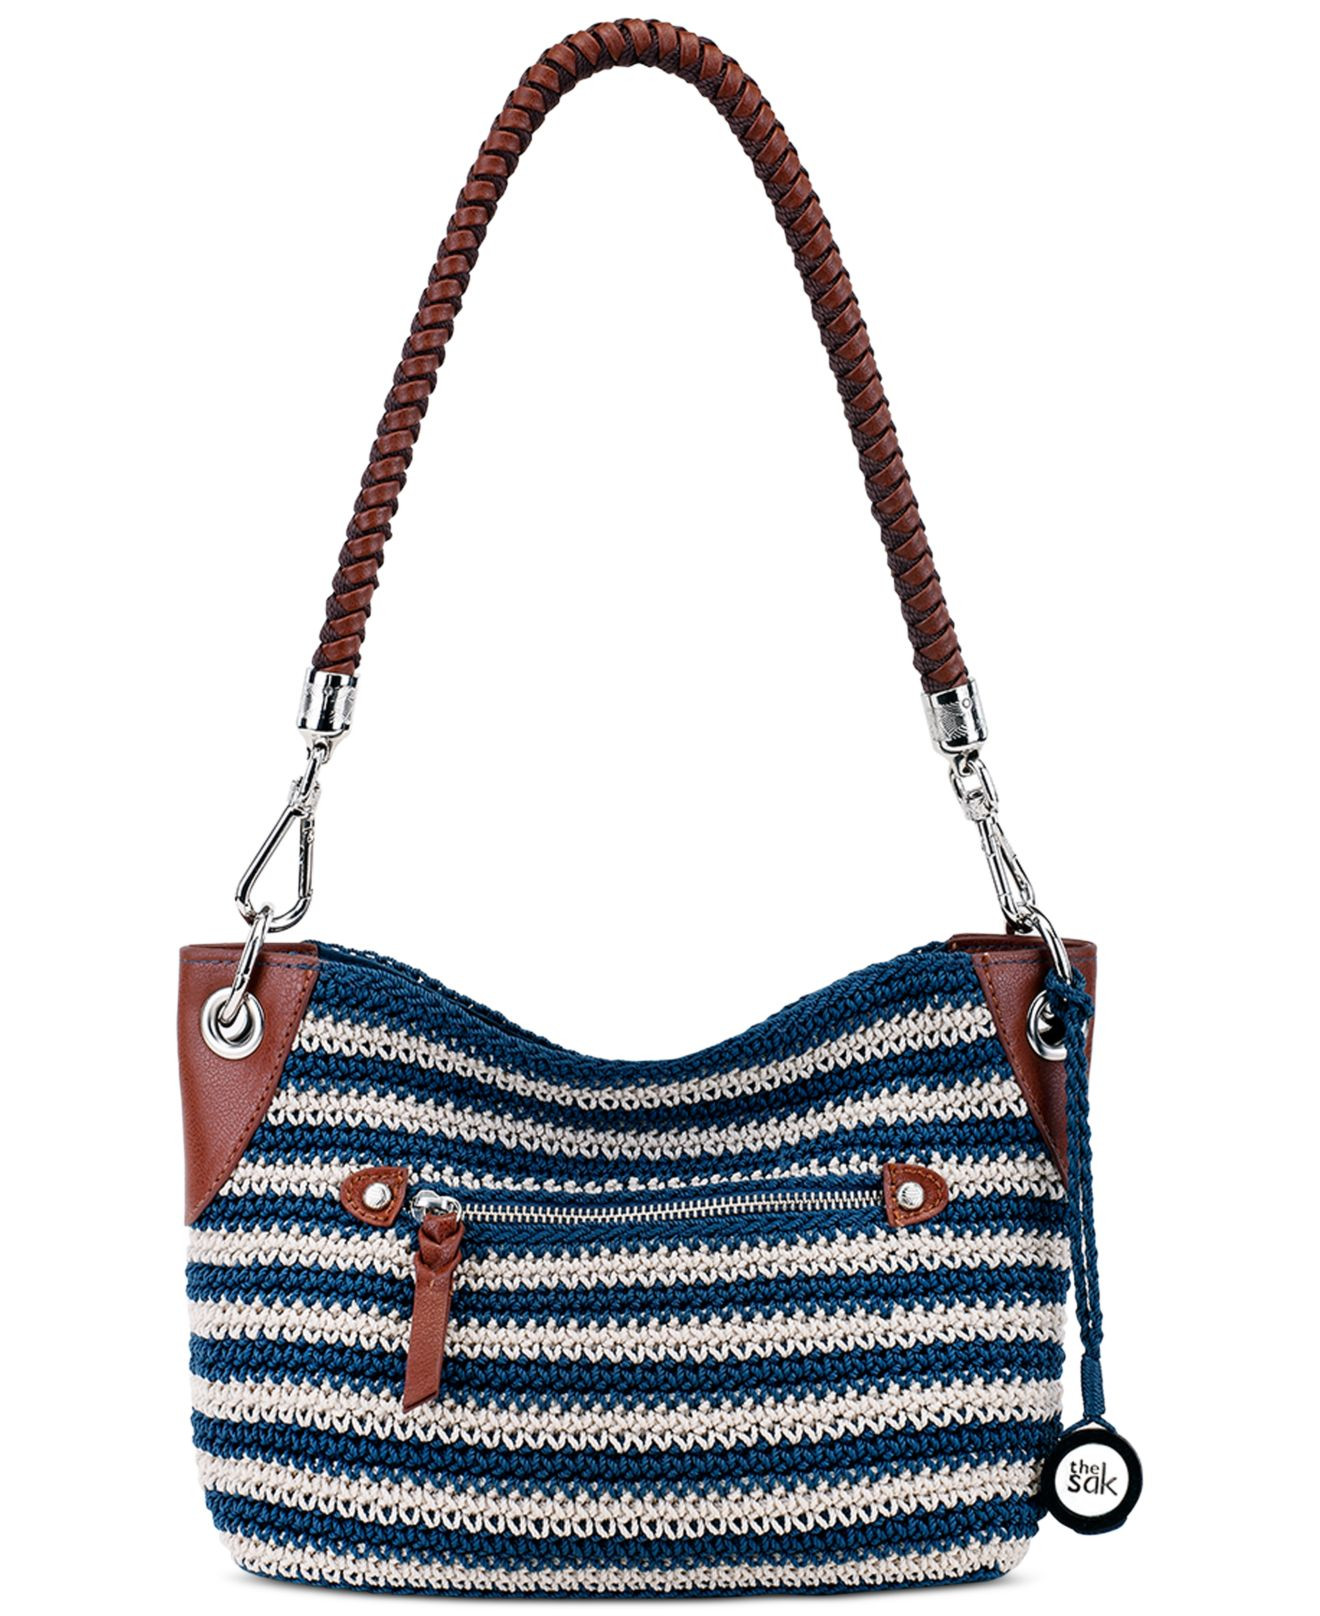 The Sak Crochet Best Of the Sak Portola Crochet Bag In Blue Vintage Eggshell Of The Sak Crochet Awesome the Sak Black Crochet Cross Body Shoulder Bag Purse Handbag